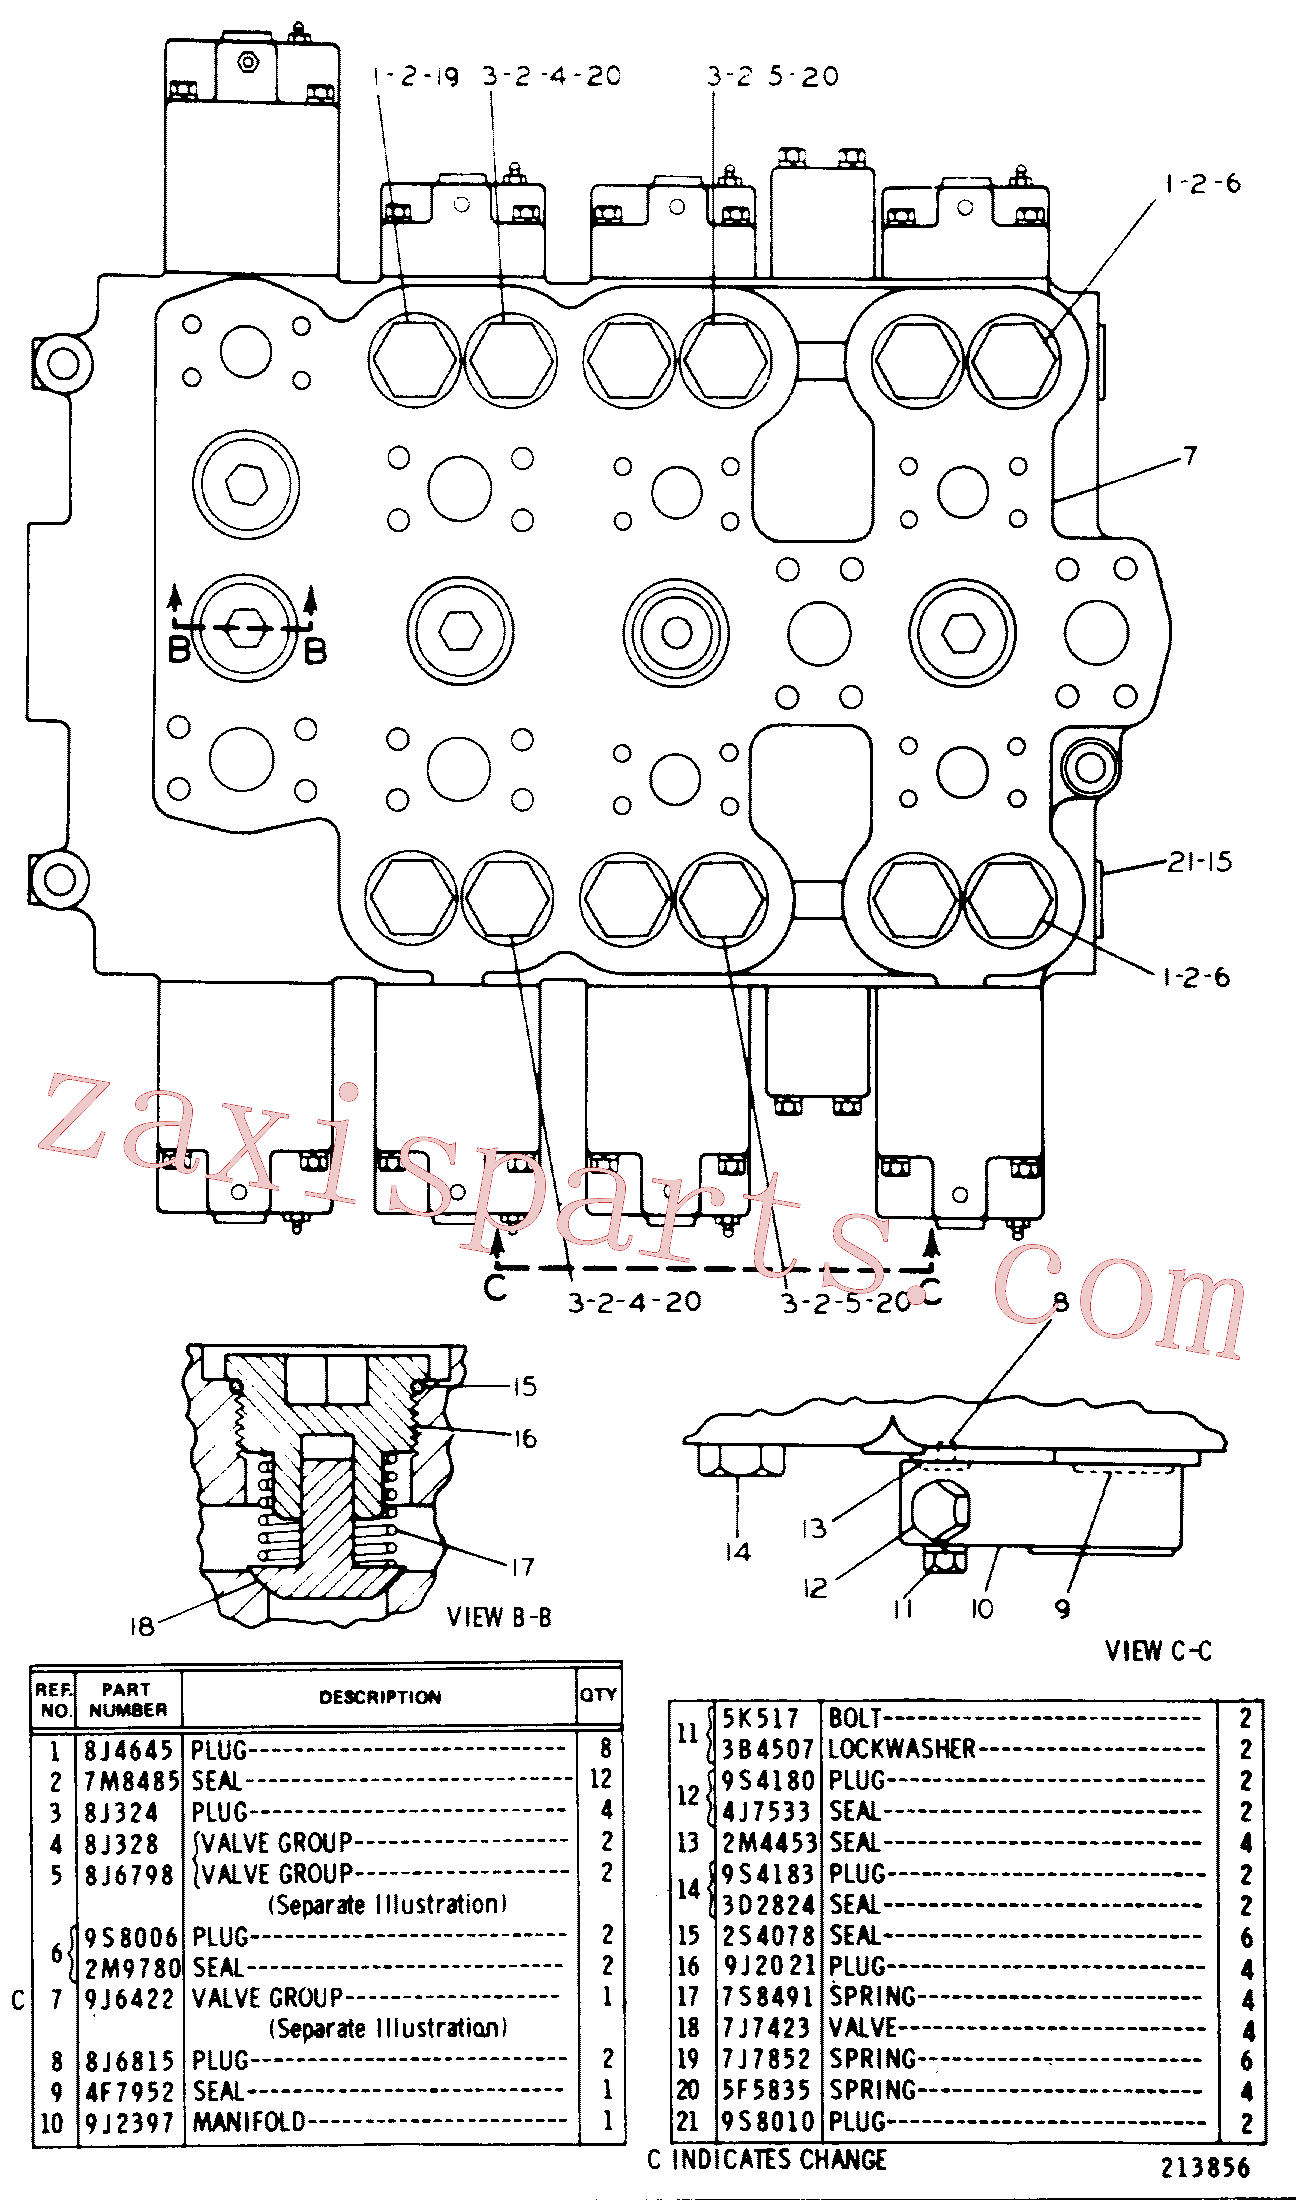 CAT 9T-0121 for 235B Excavator(EXC) hydraulic system 8J-8477 Assembly